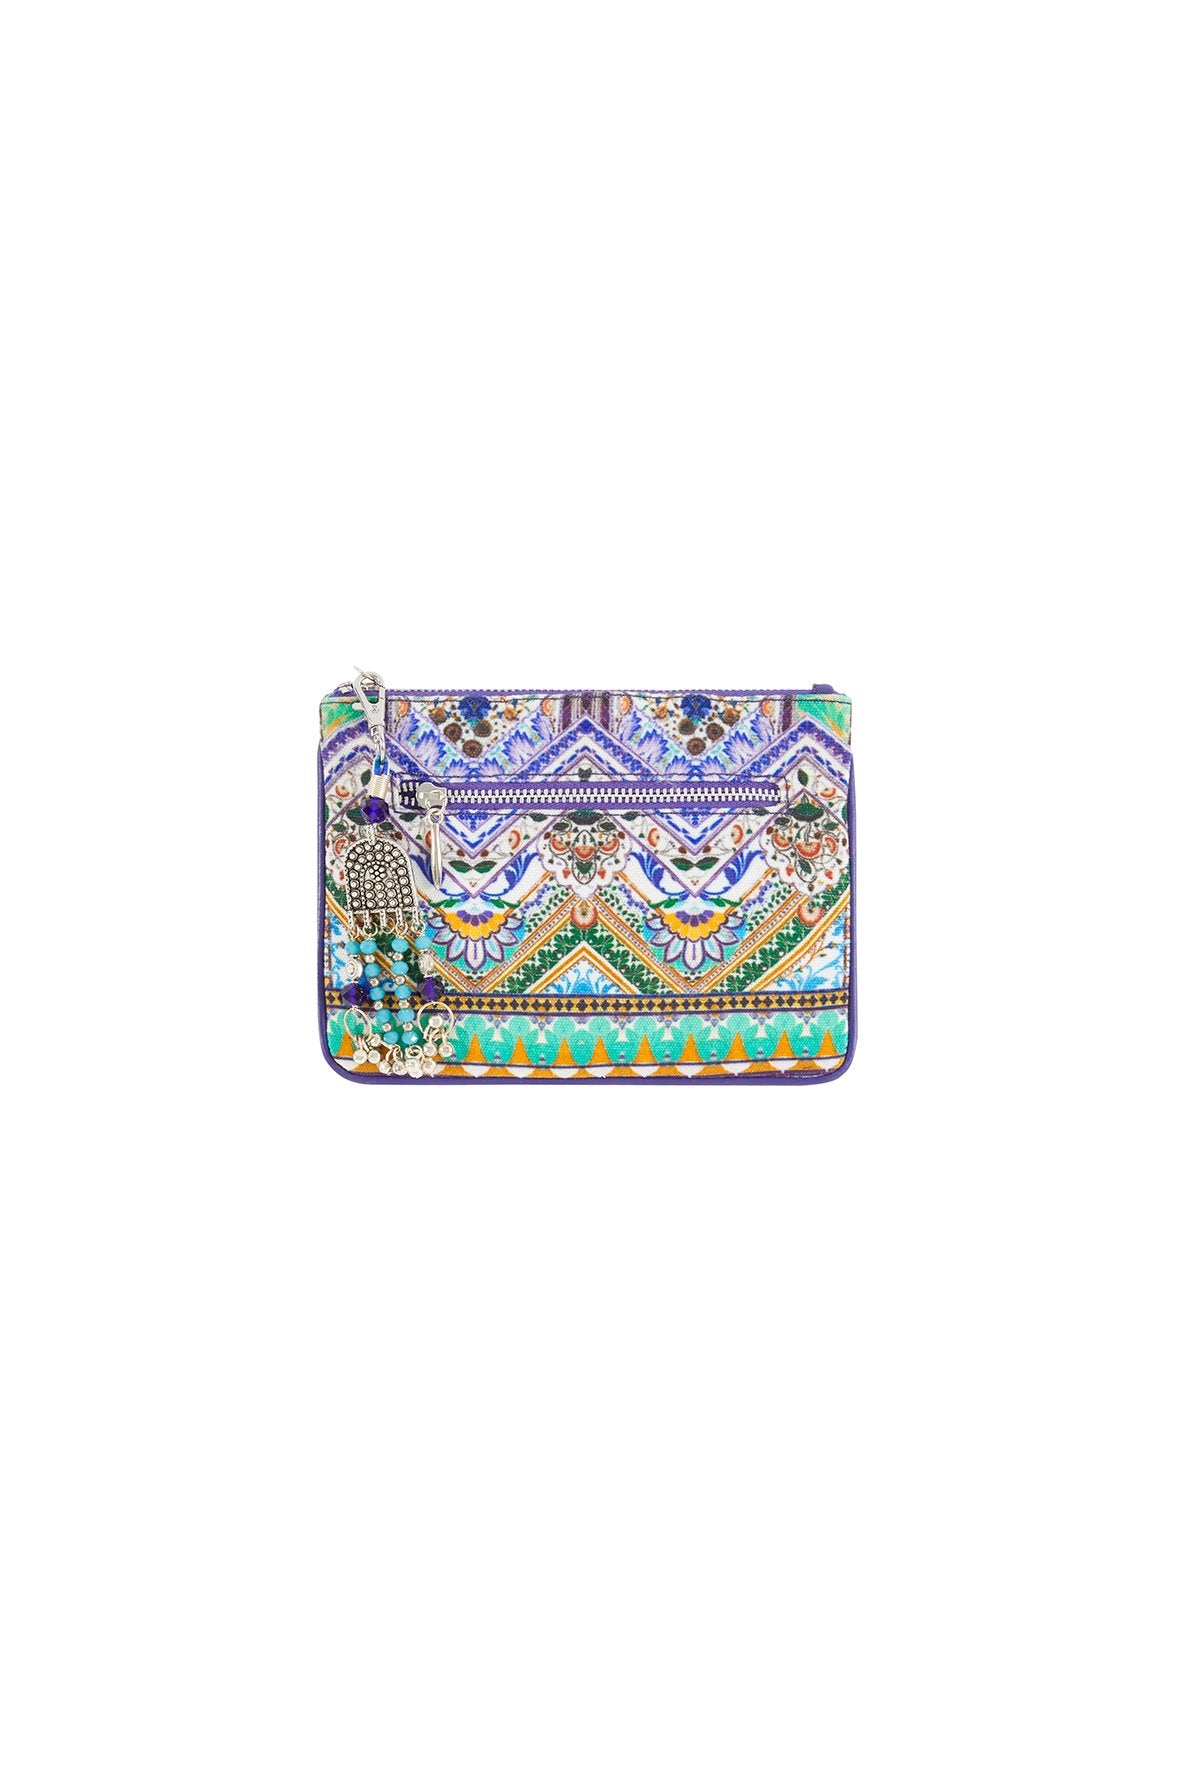 EVERLASTING UDAIPUR PHONE & COIN PURSE